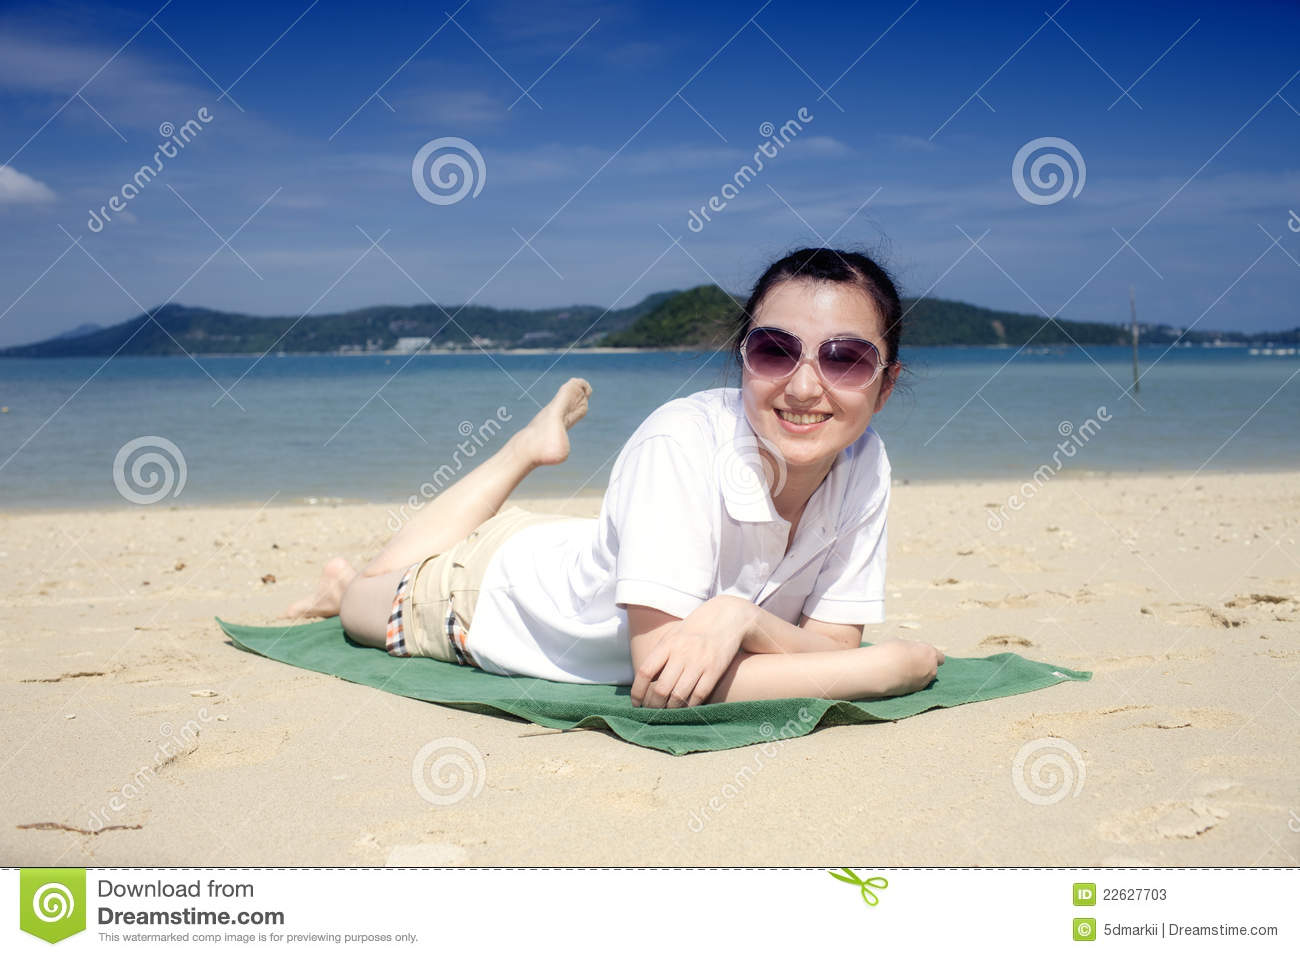 pine beach single asian girls Join the largest christian dating site sign up for free and connect with other christian singles looking for love based on faith.